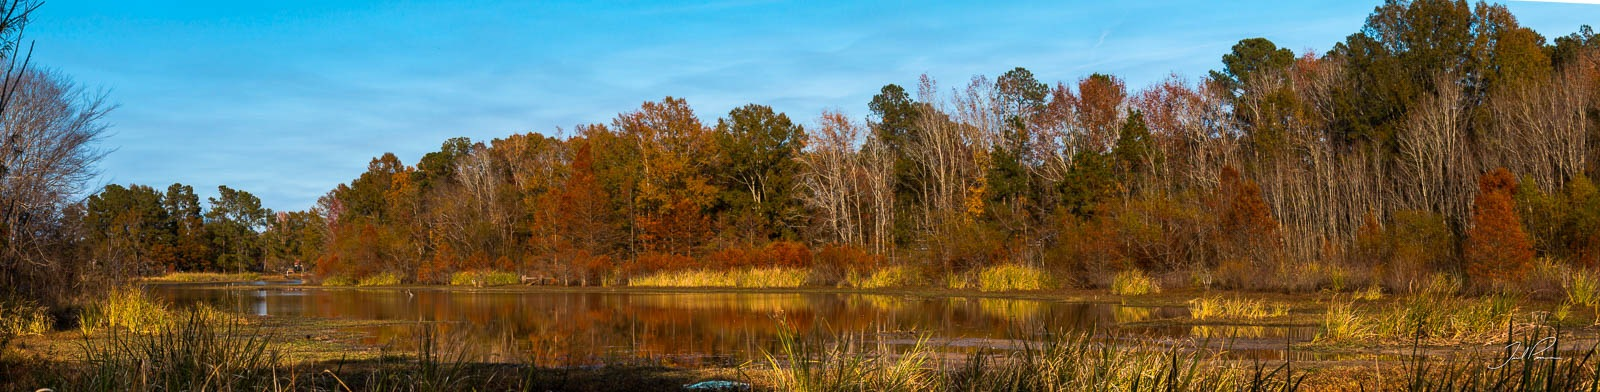 Santee Cooper Country Autumn by Jared Pease